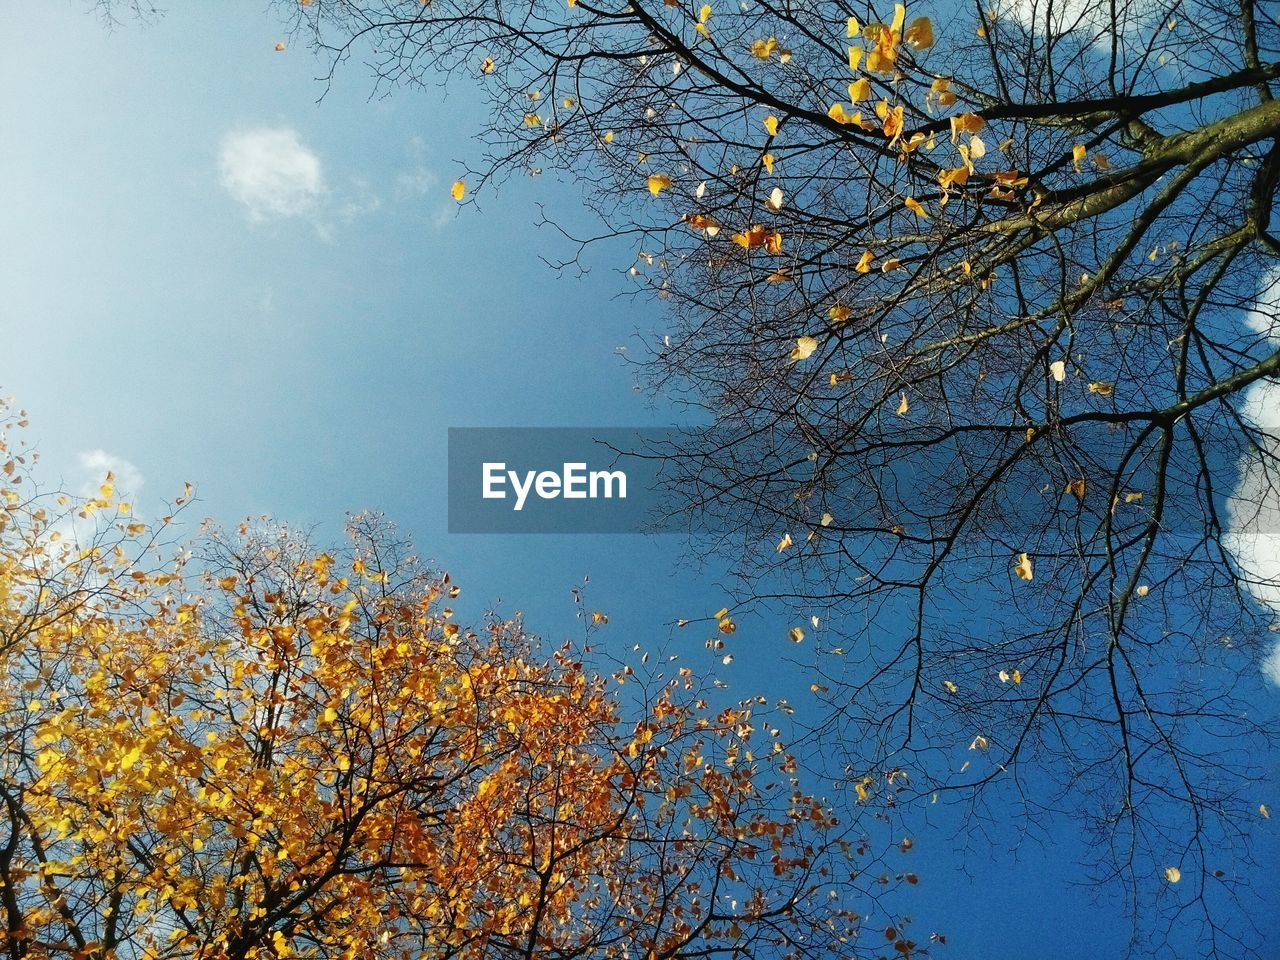 tree, nature, beauty in nature, branch, low angle view, no people, growth, day, autumn, tranquility, outdoors, sky, flower, clear sky, freshness, bare tree, fragility